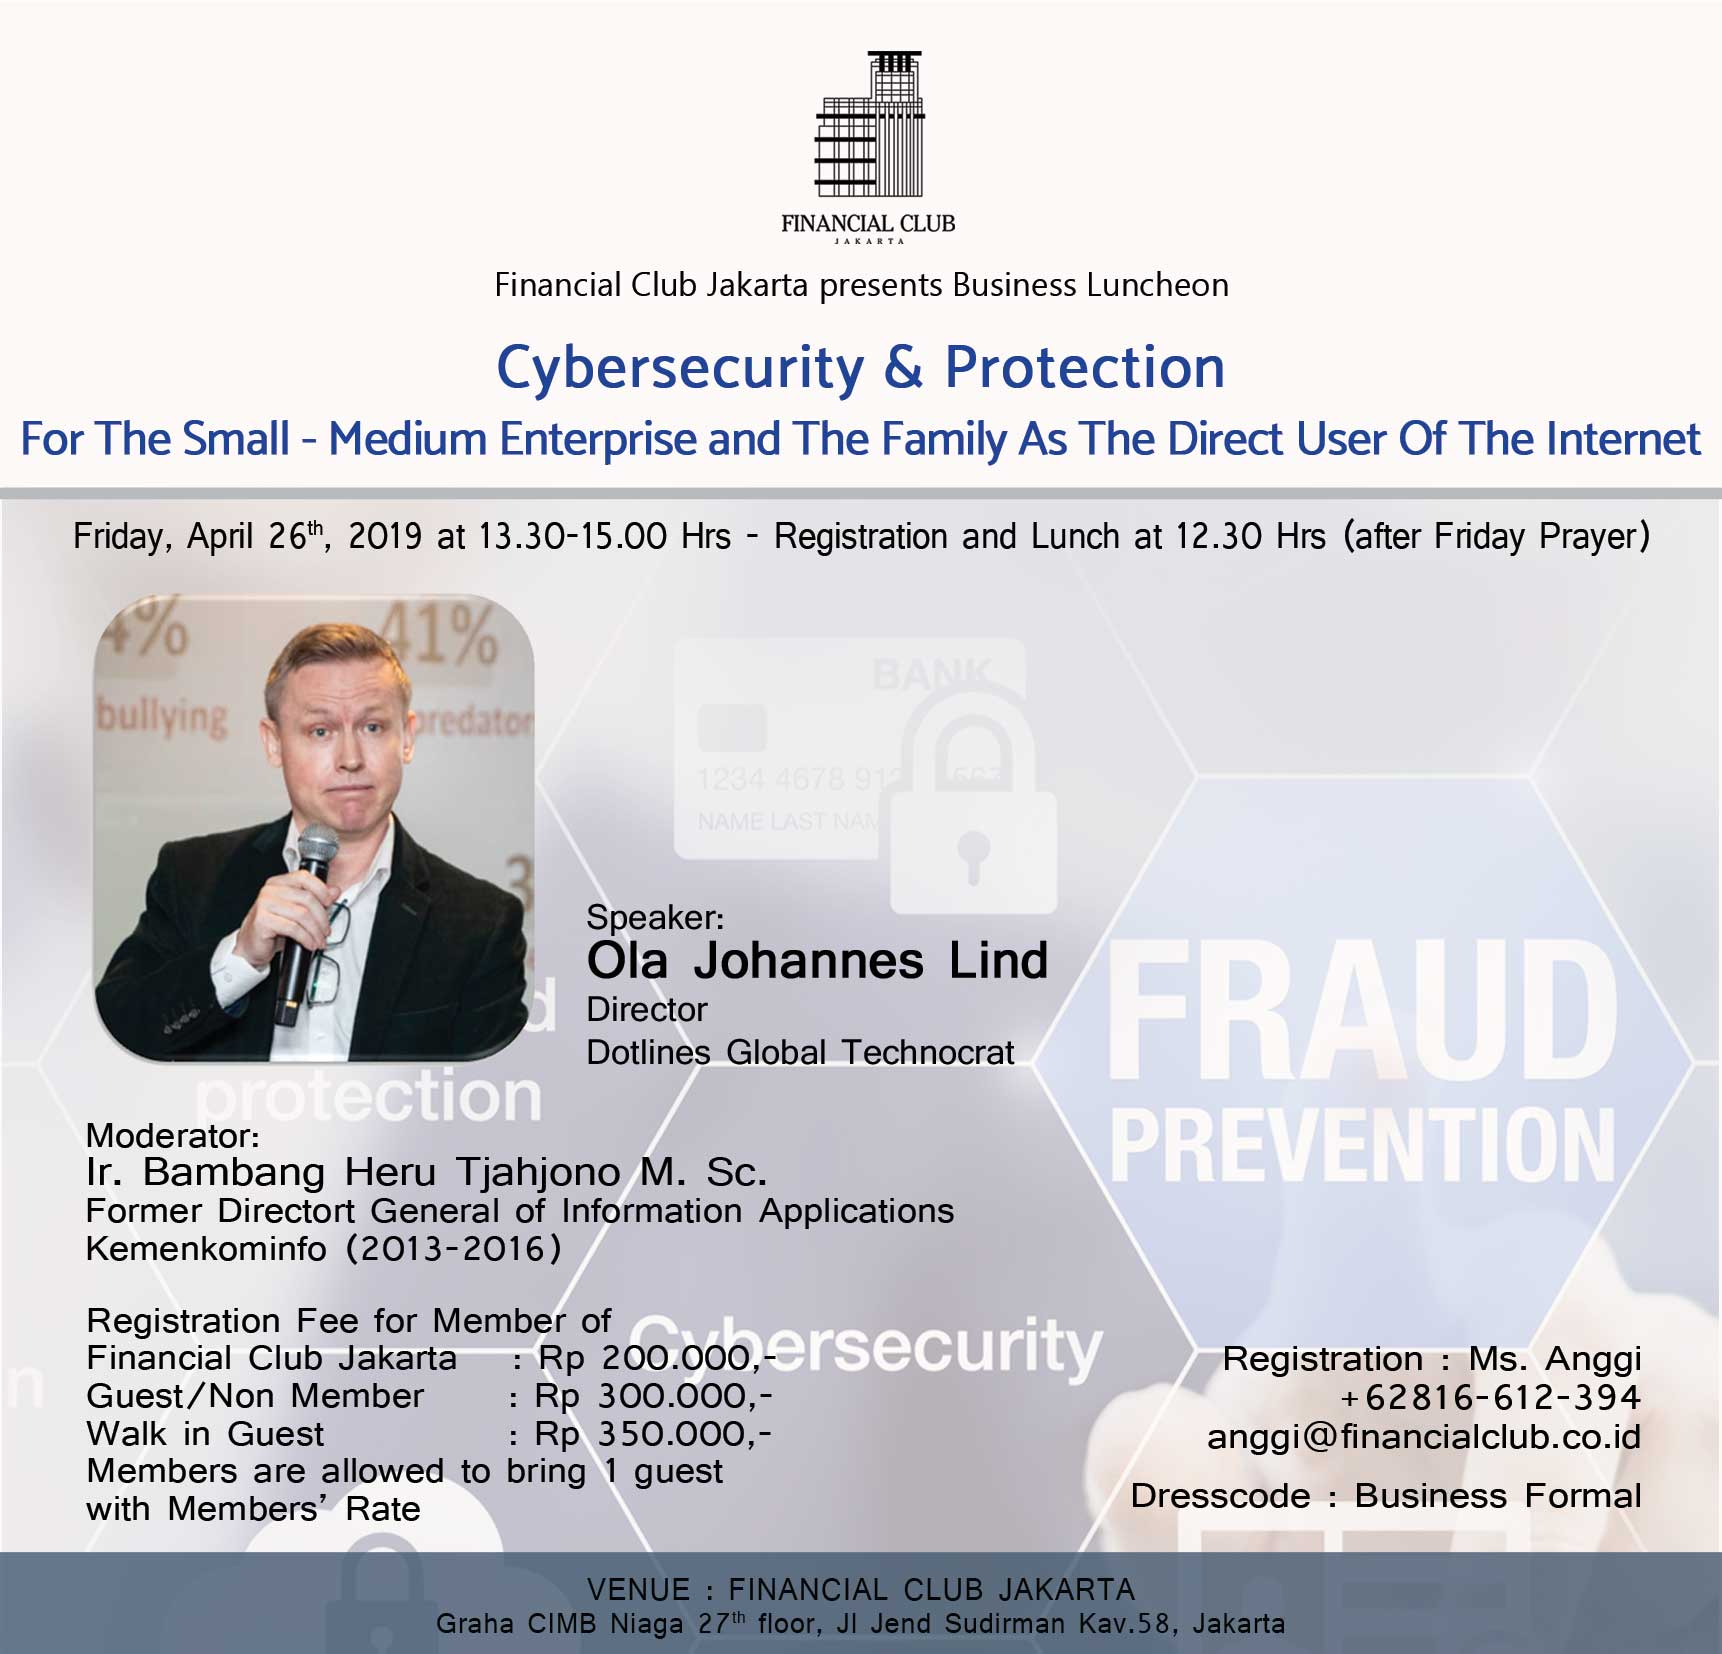 Business Luncheon Cybersecurity & Protection, Friday 26 April 2019 @ 13.30-15.00 Hrs